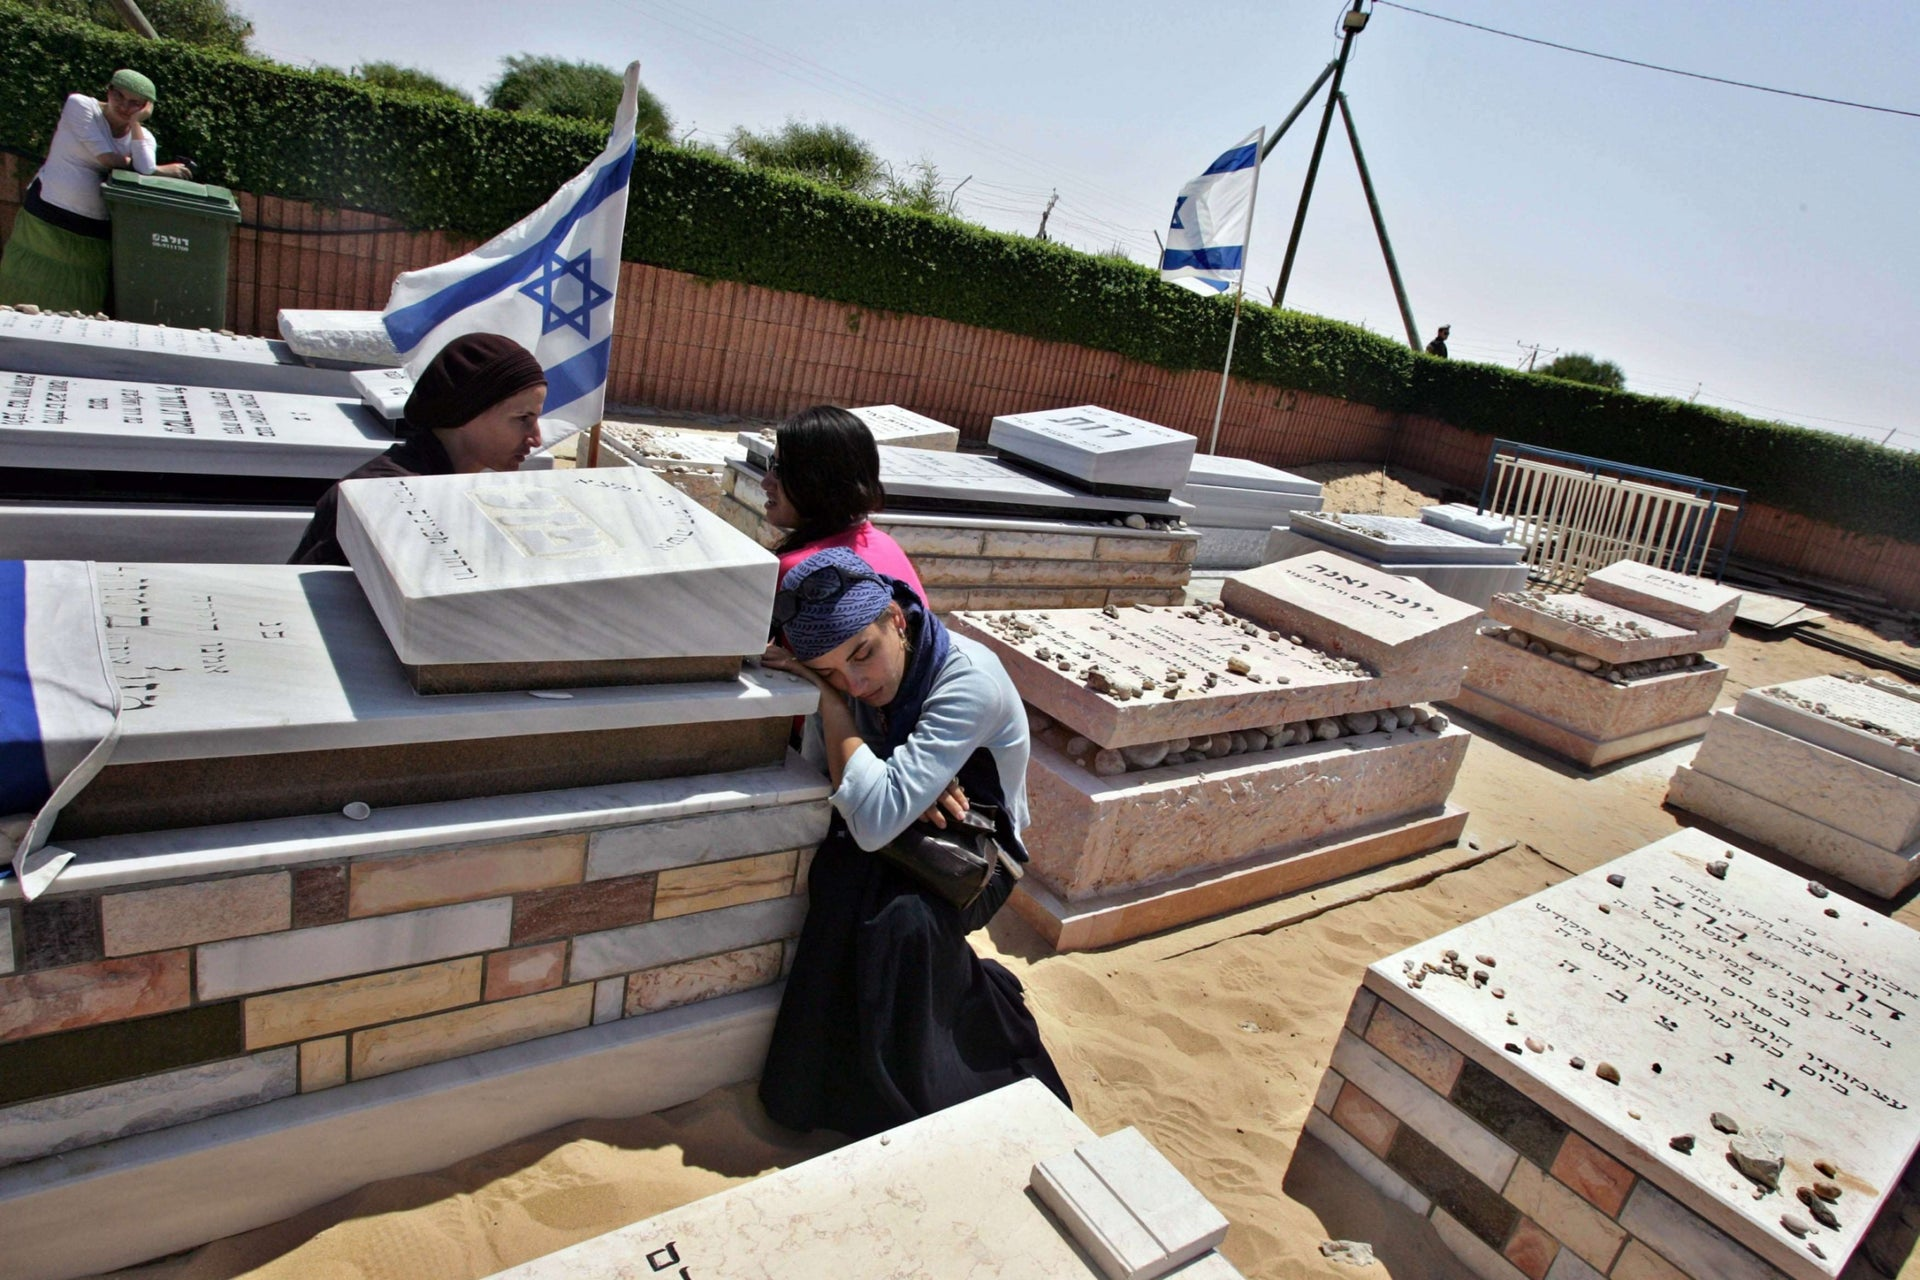 Israelis mourning next to the graves of relatives in the Gush Katif cemetery, before the exhumation of graves as part of Israel's disengagement from the Gaza Strip, August 2005.